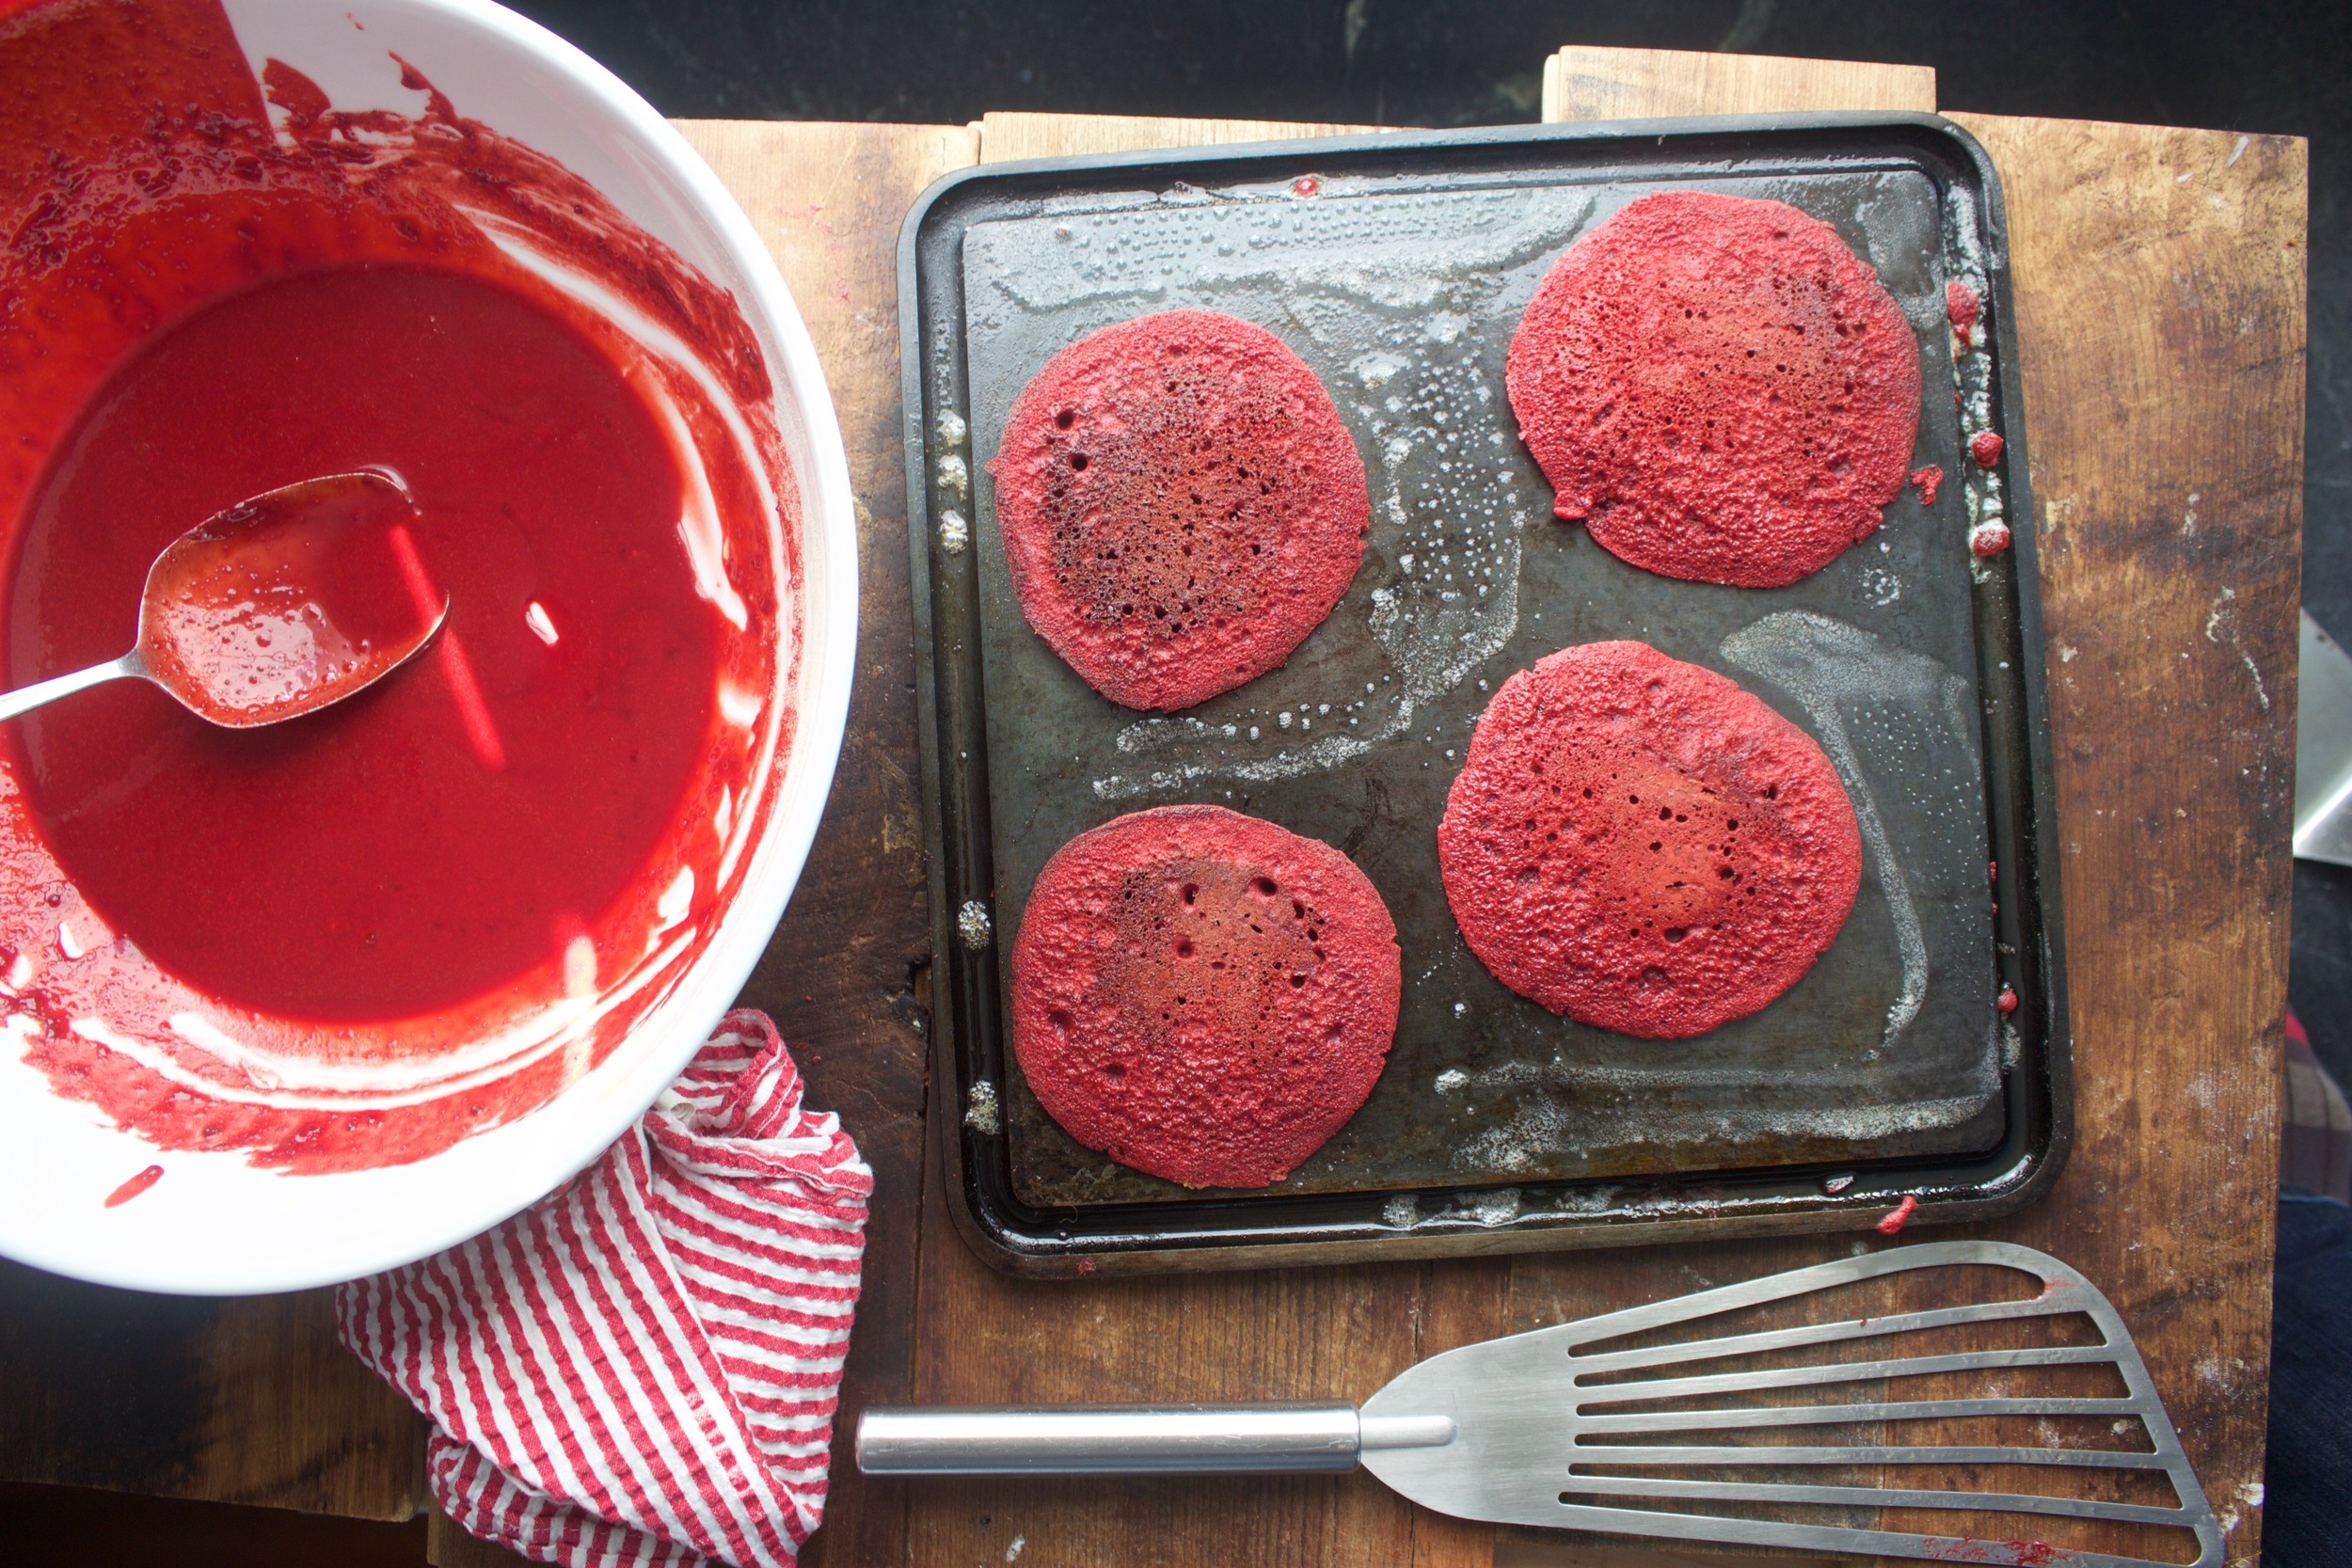 Red Velvet Pancakes and the Mini Griddle